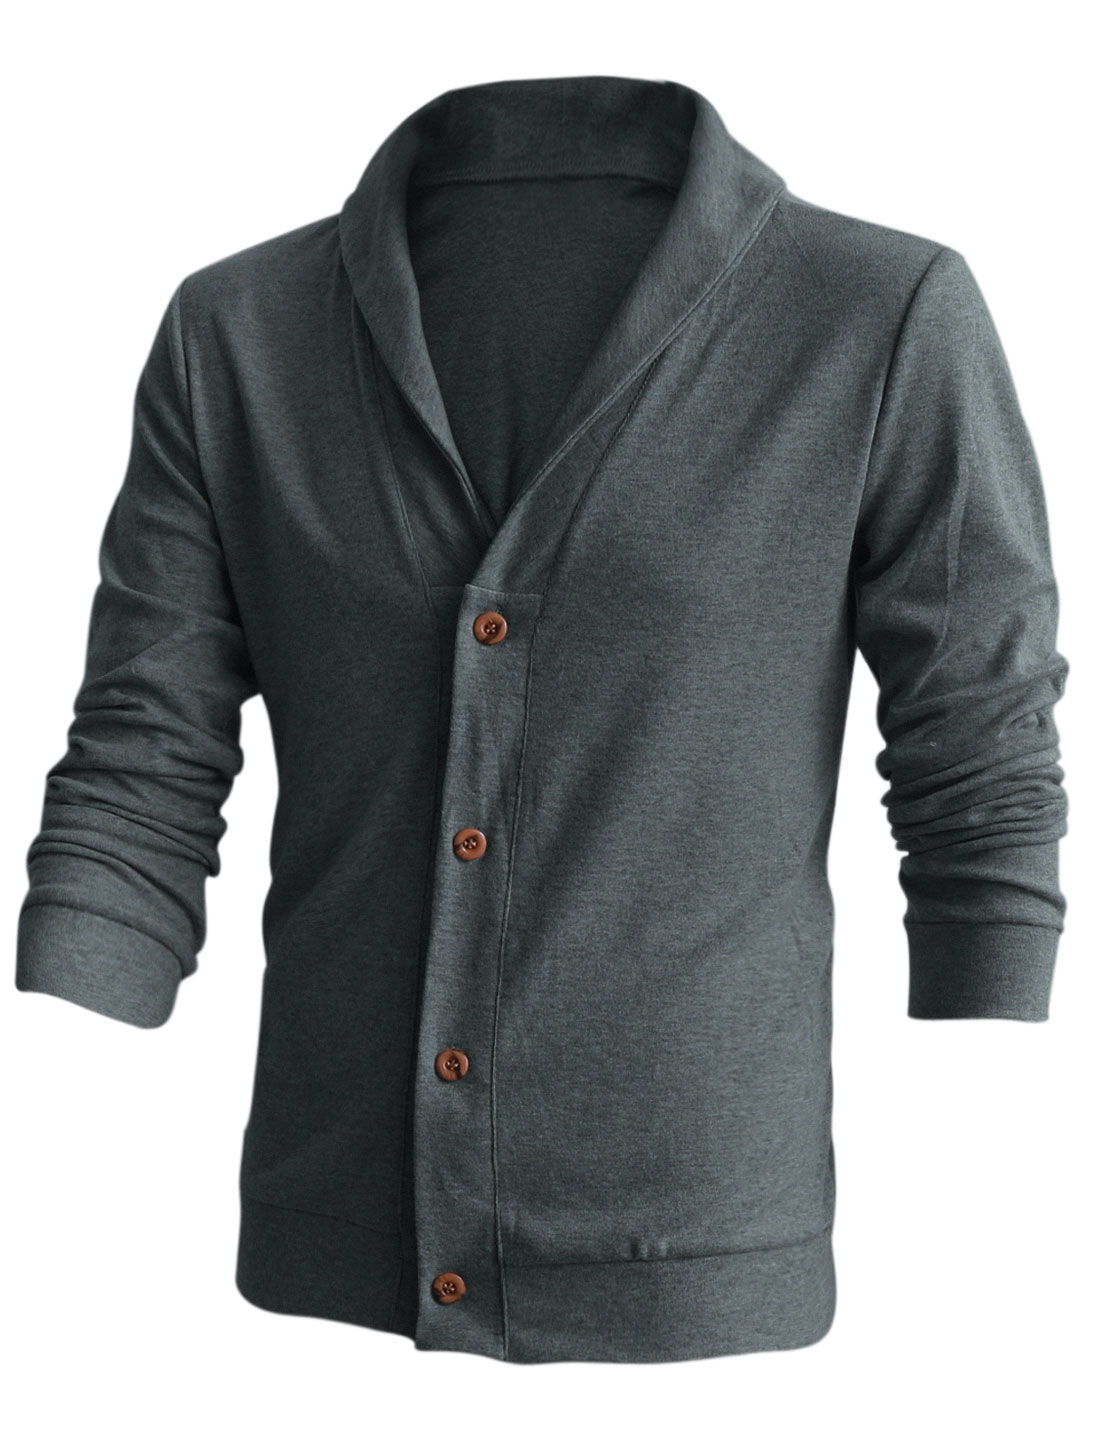 Men Soft Buttoned Closure Front Leisure Cardigan Dark Gray M